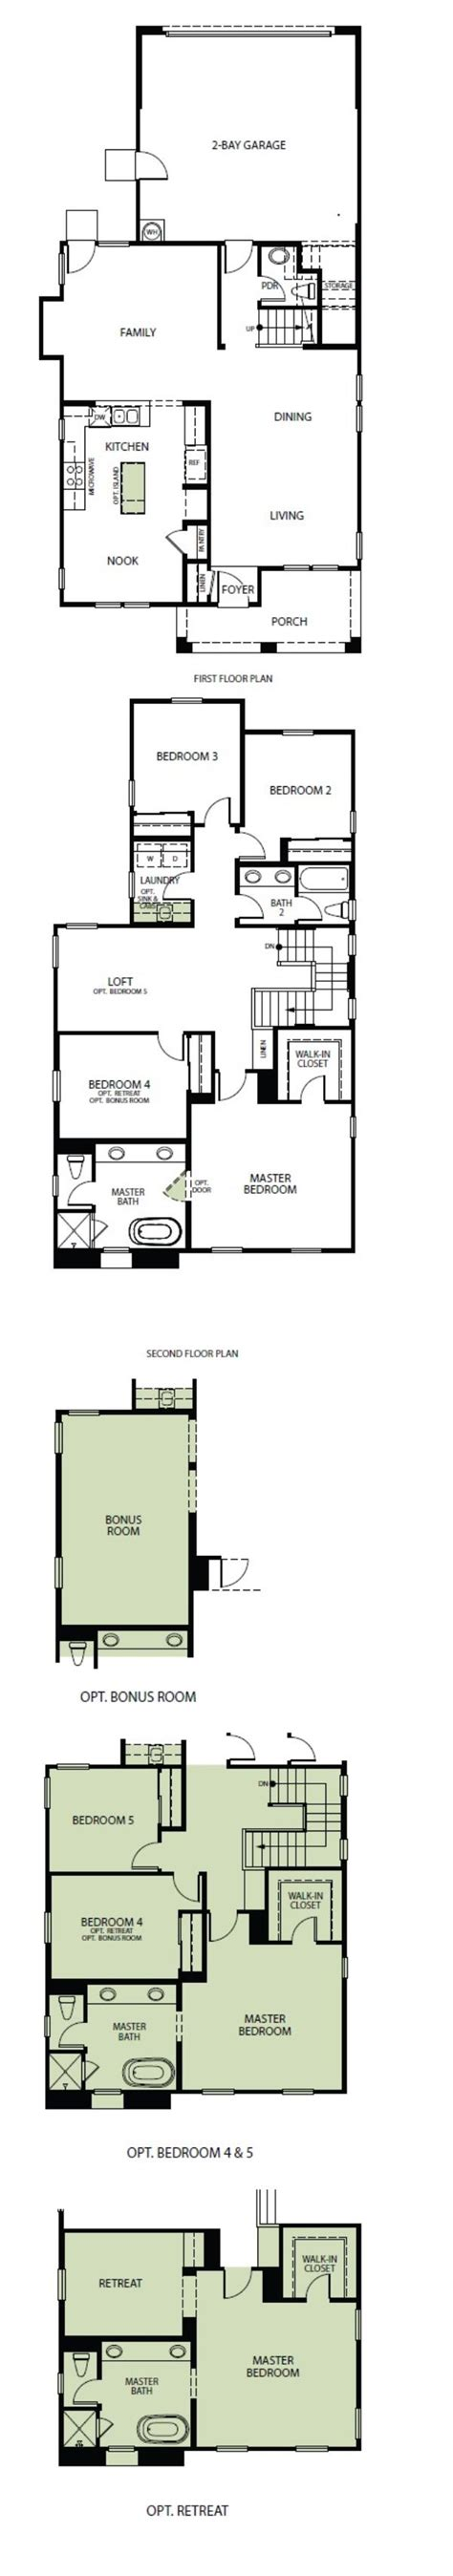 woodside homes floor plans plan 4 model 3 bedroom 2 5 bath new home in sacramento ca woodside homes at natomas